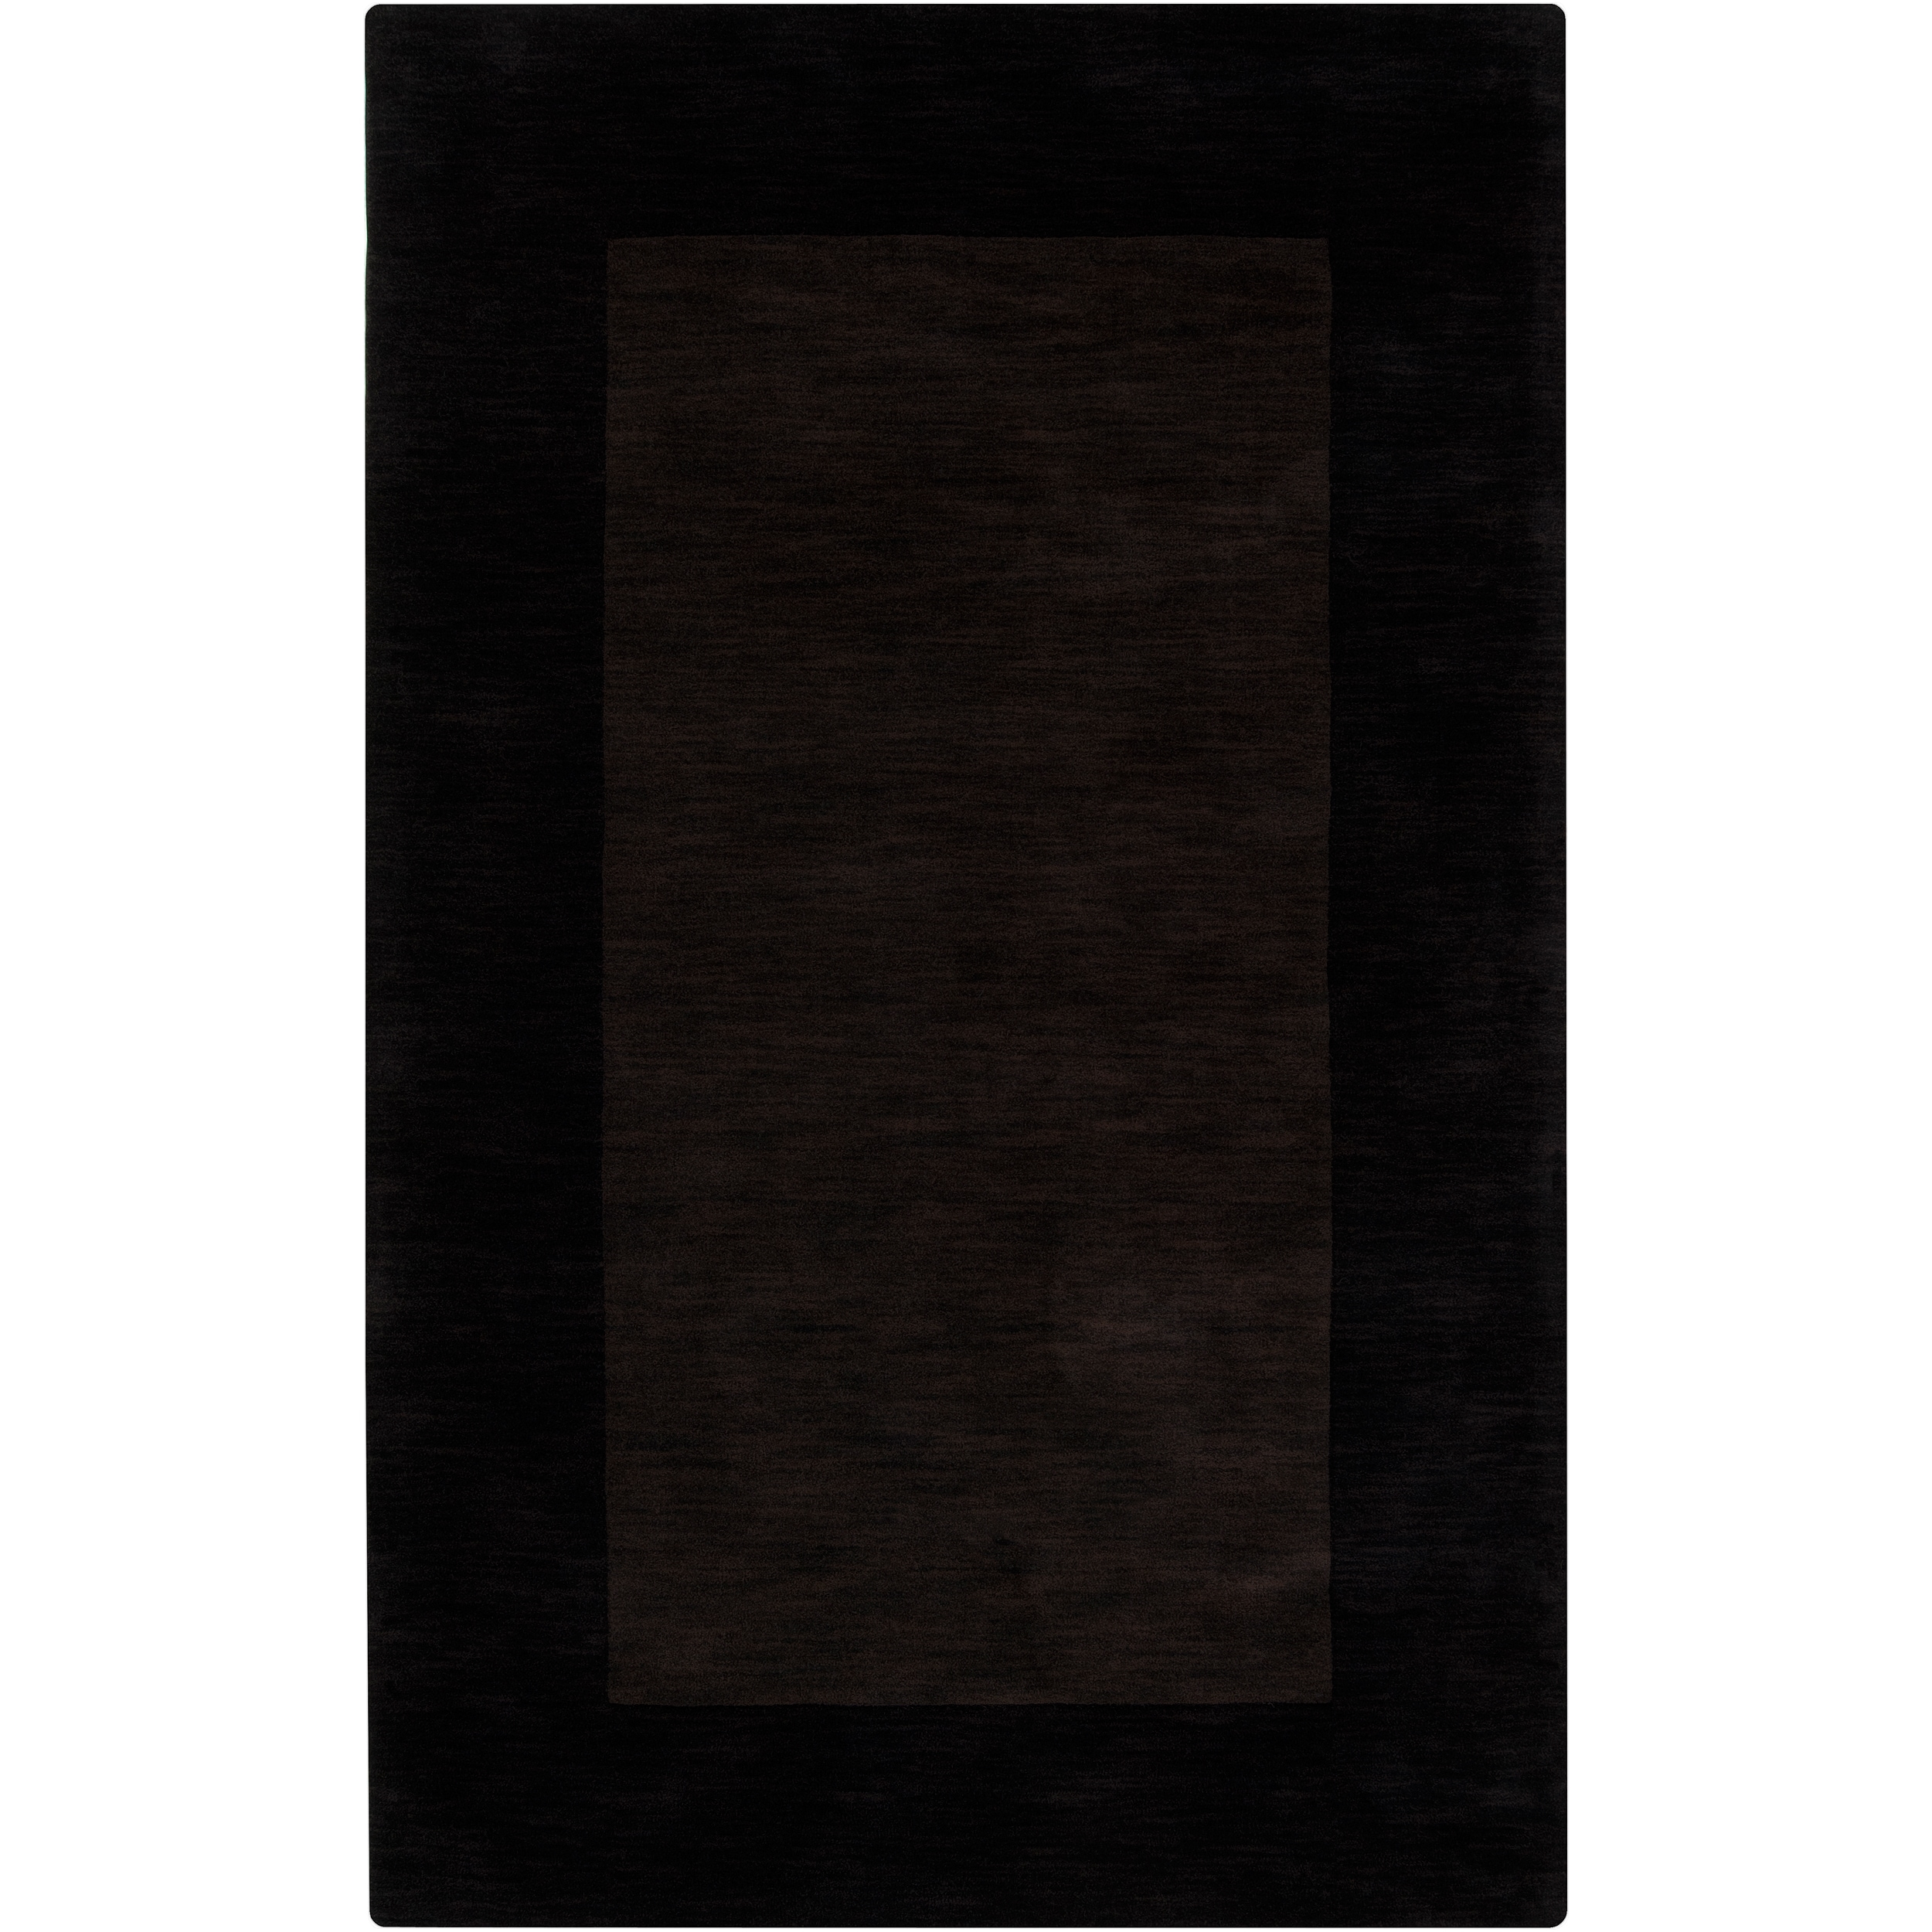 Hand-crafted Dark Brown Tone-On-Tone Bordered Inster Wool Rug (5' x 8')